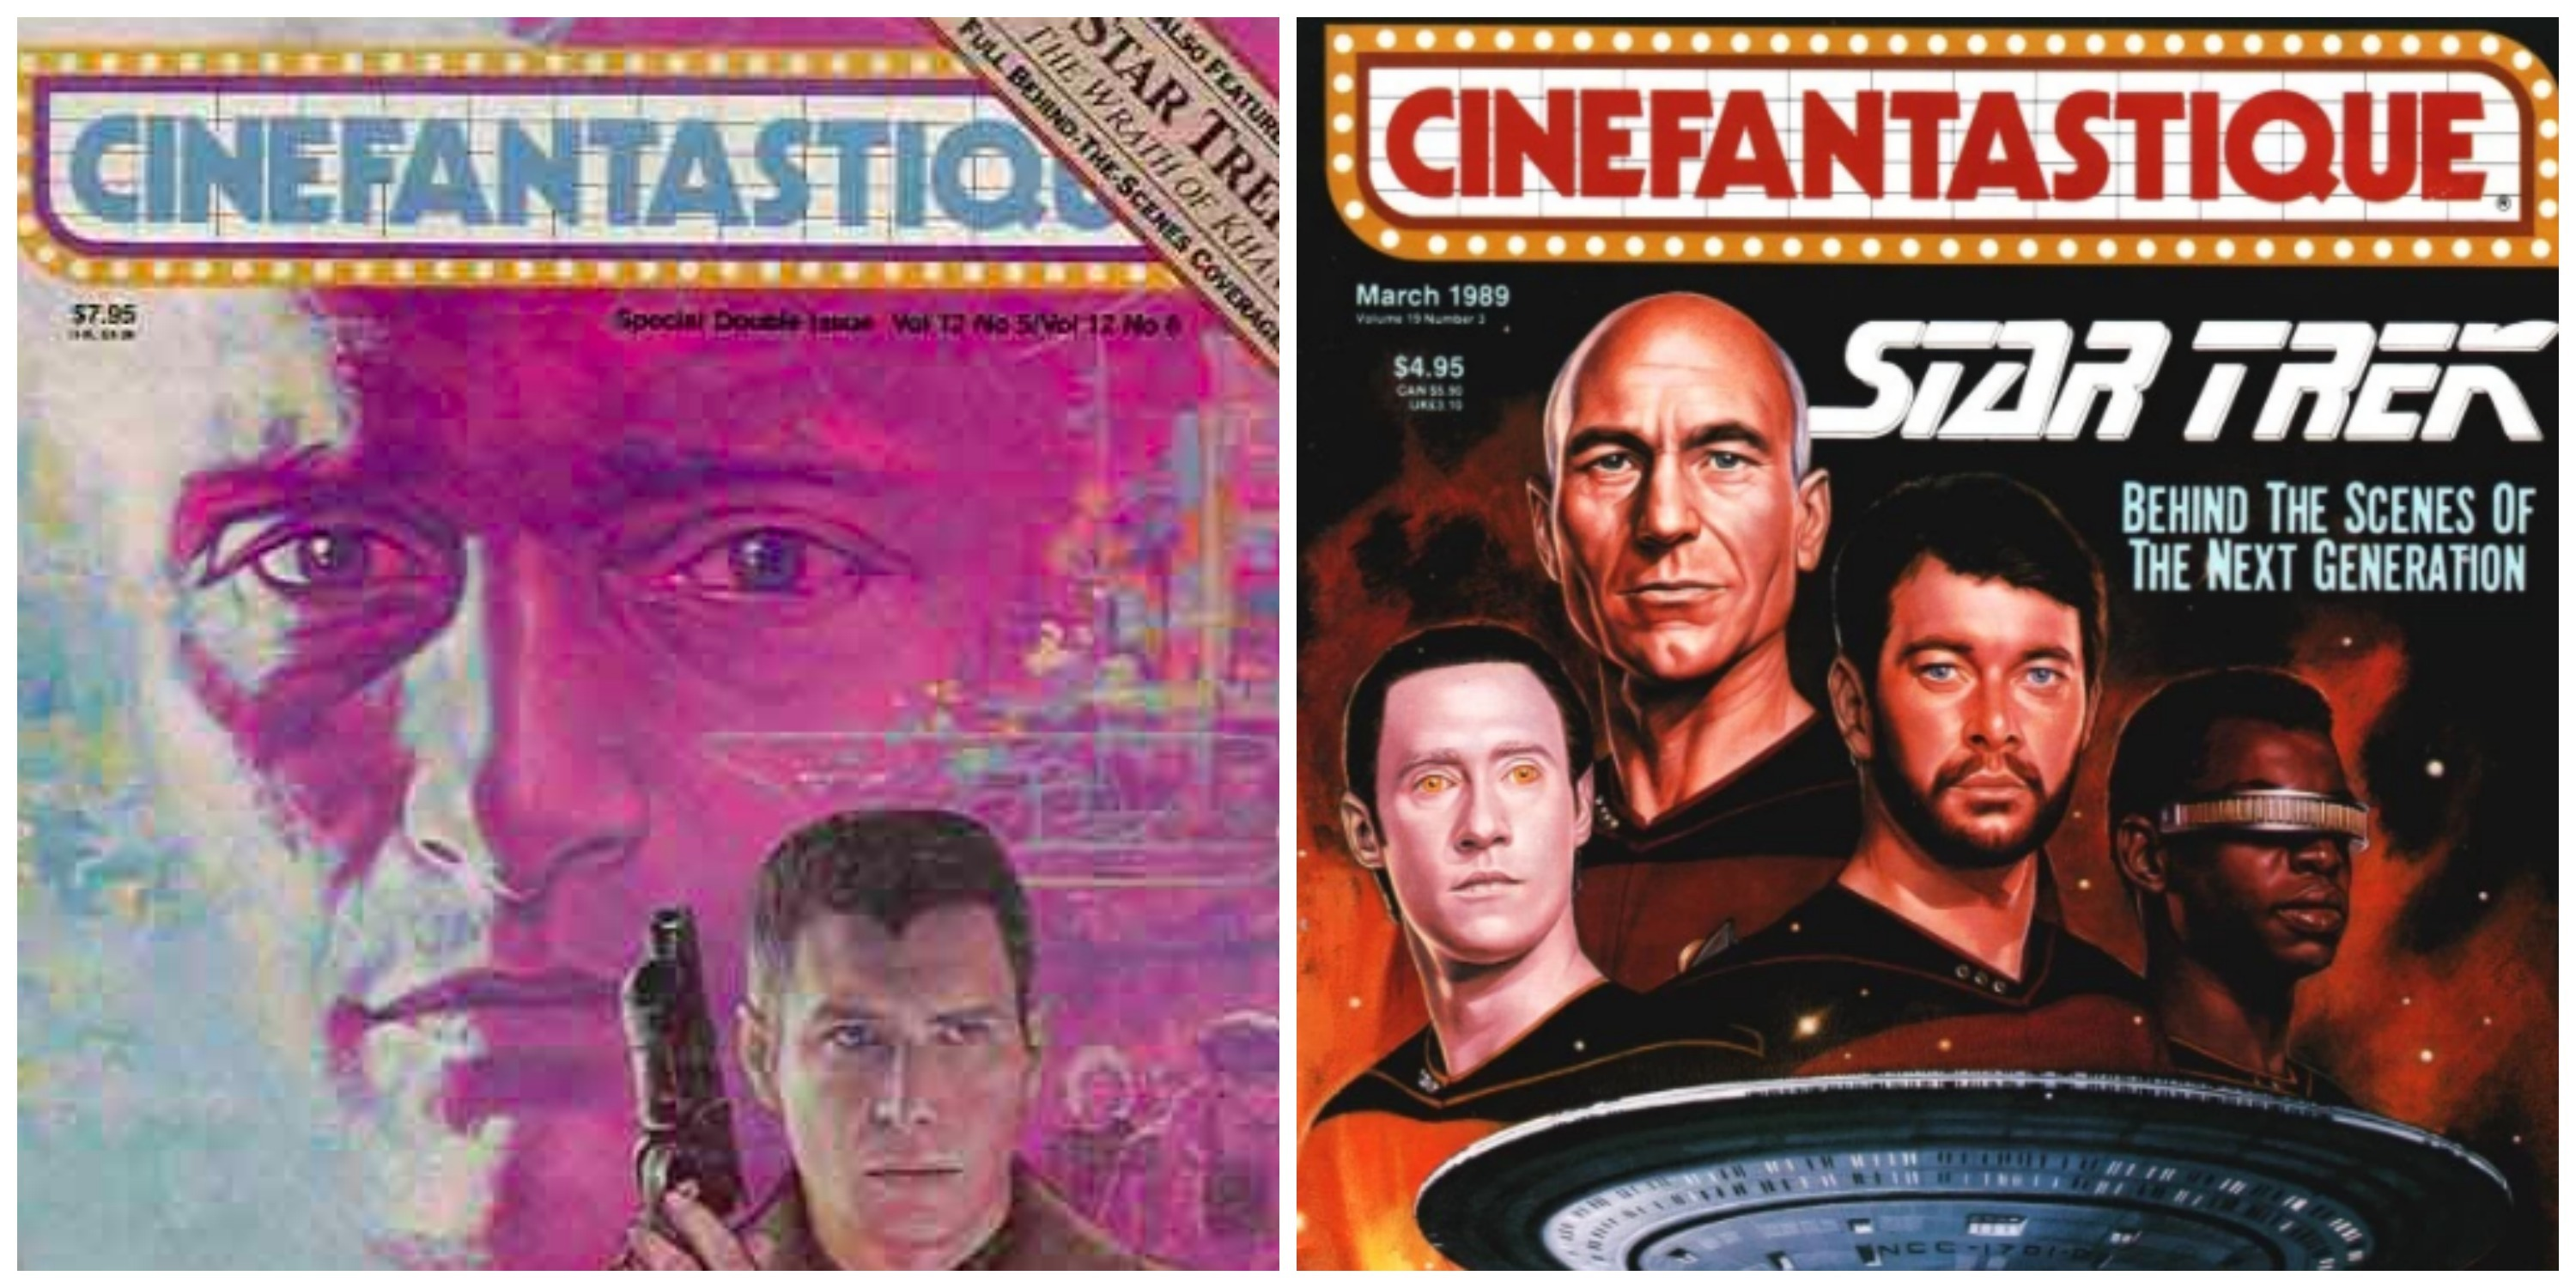 LEFT: Blade Runner issue of Cinefantastique in 1984. RIGHT: Mark Altman's investigative 'Star Trek: The Next Generation' piece in the March 1989 issue.